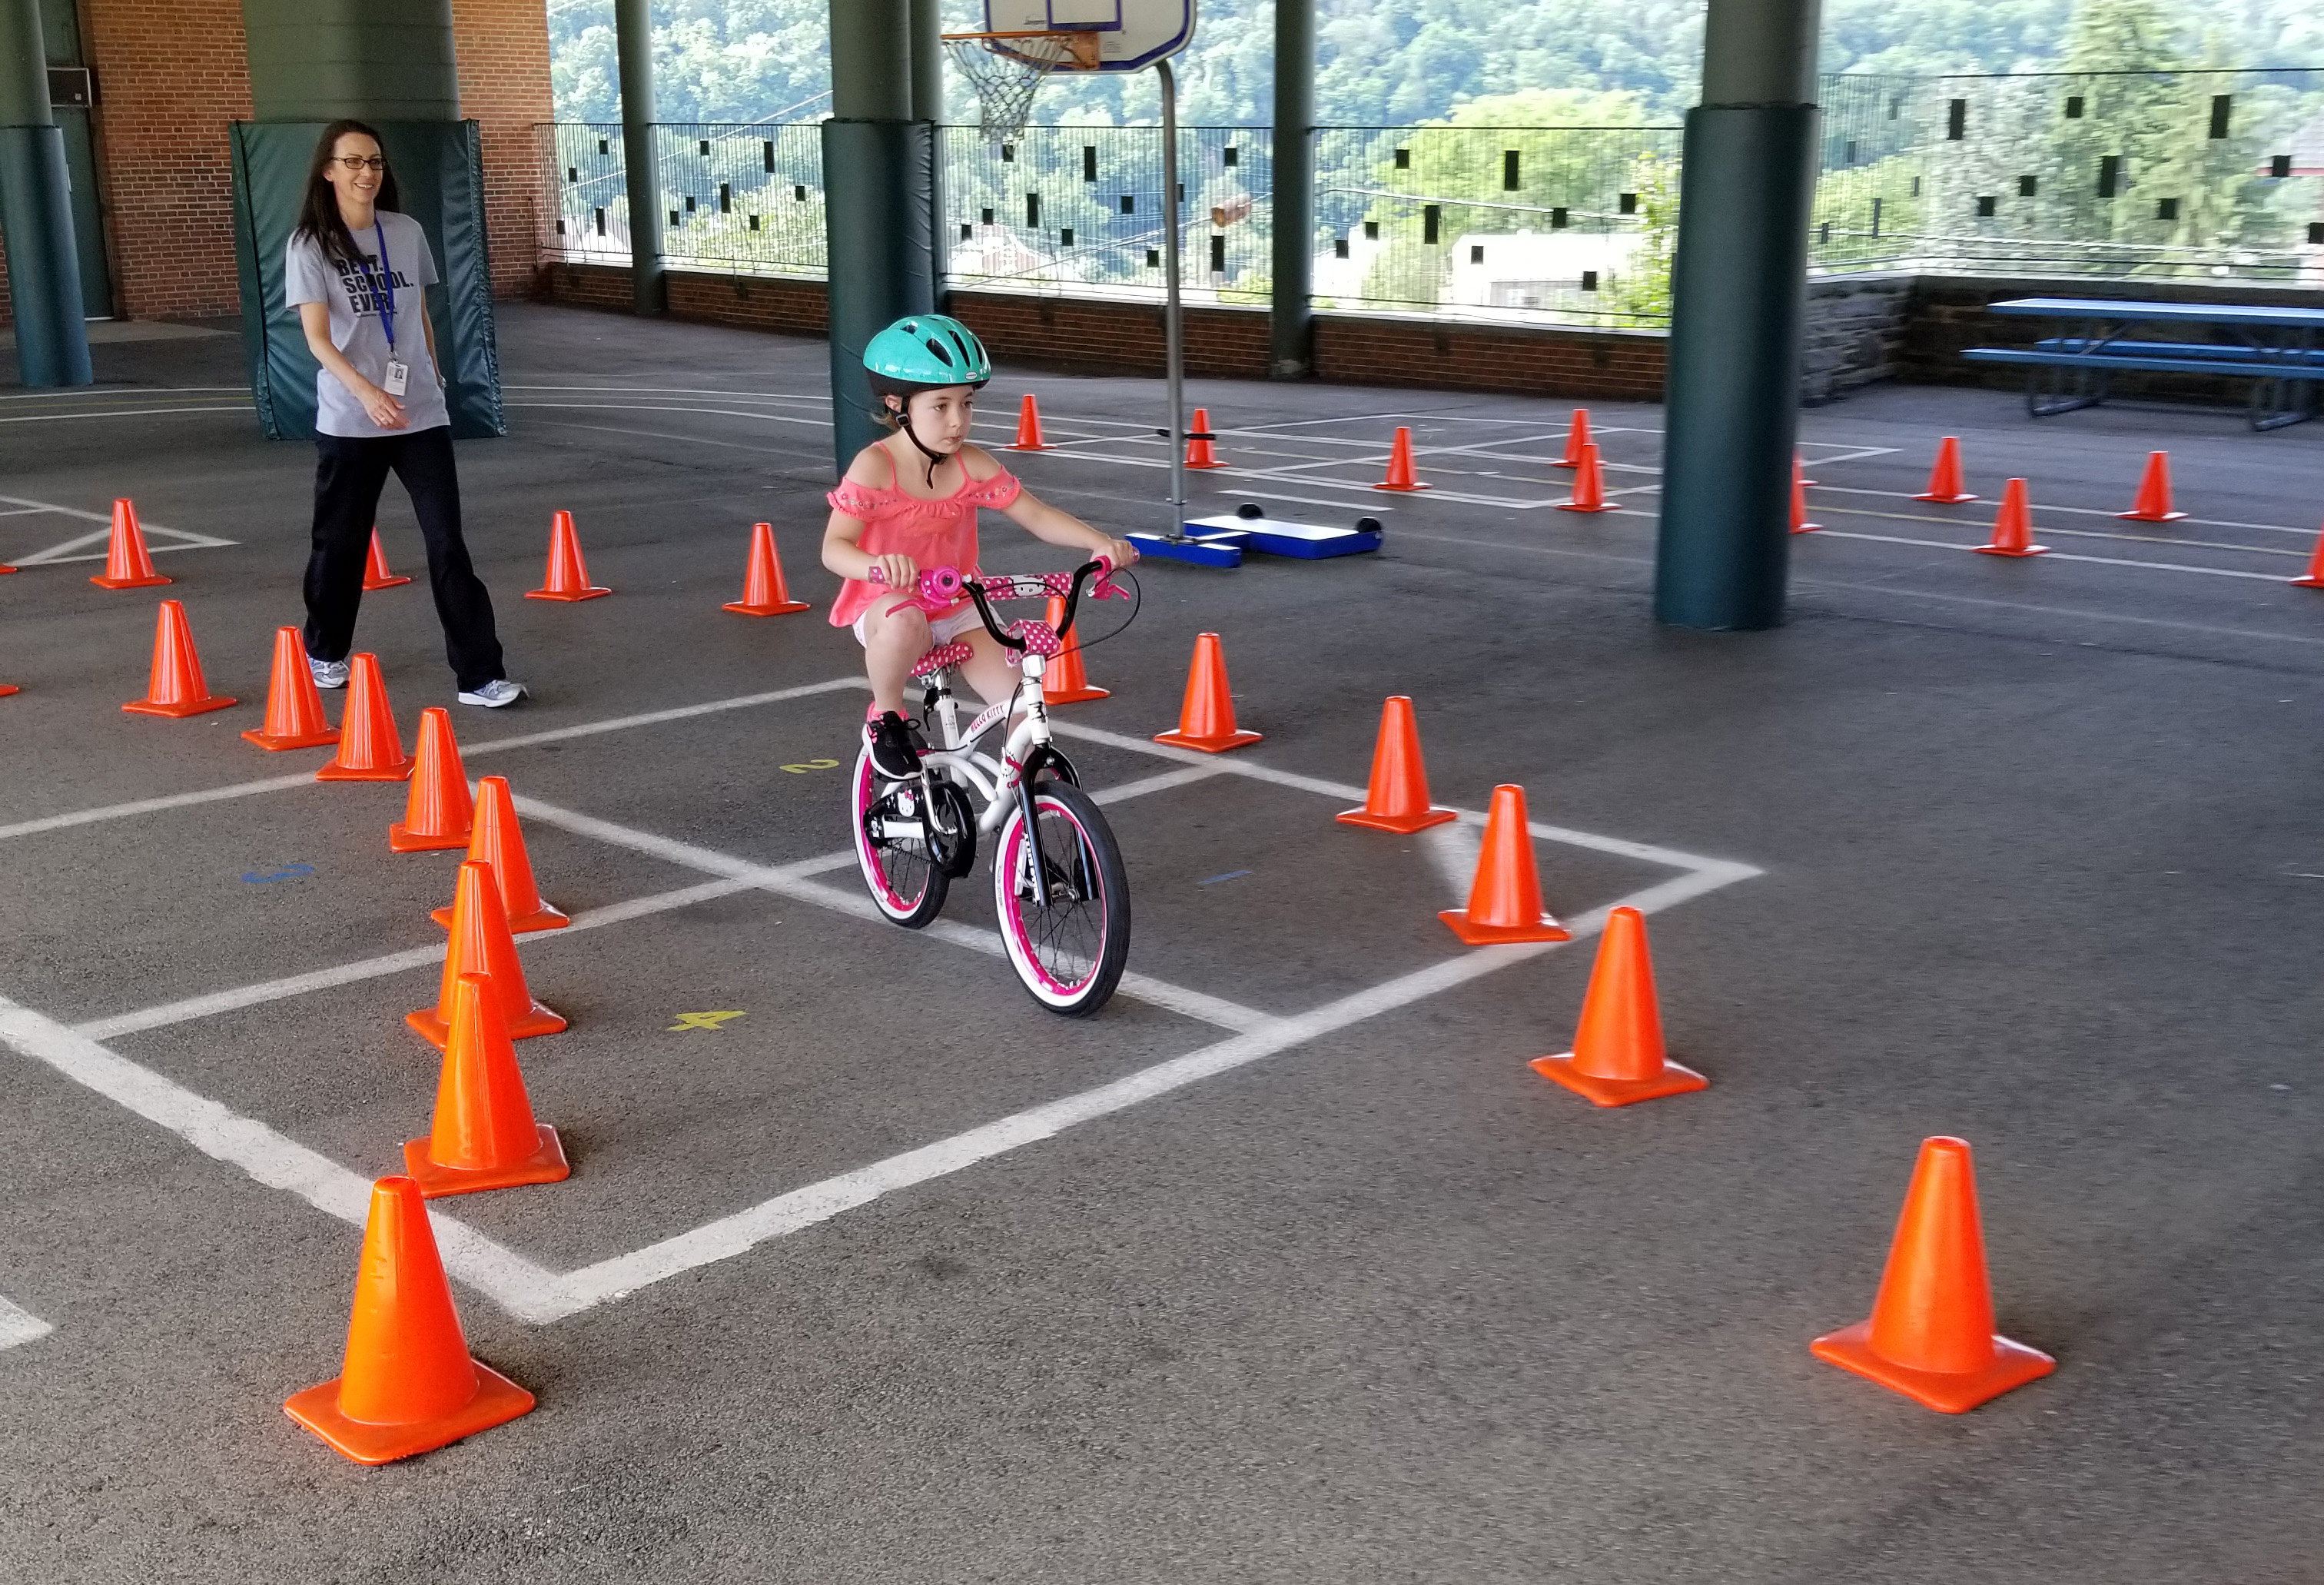 Girl on a bicycle riding a path marked by cones with a teacher watching